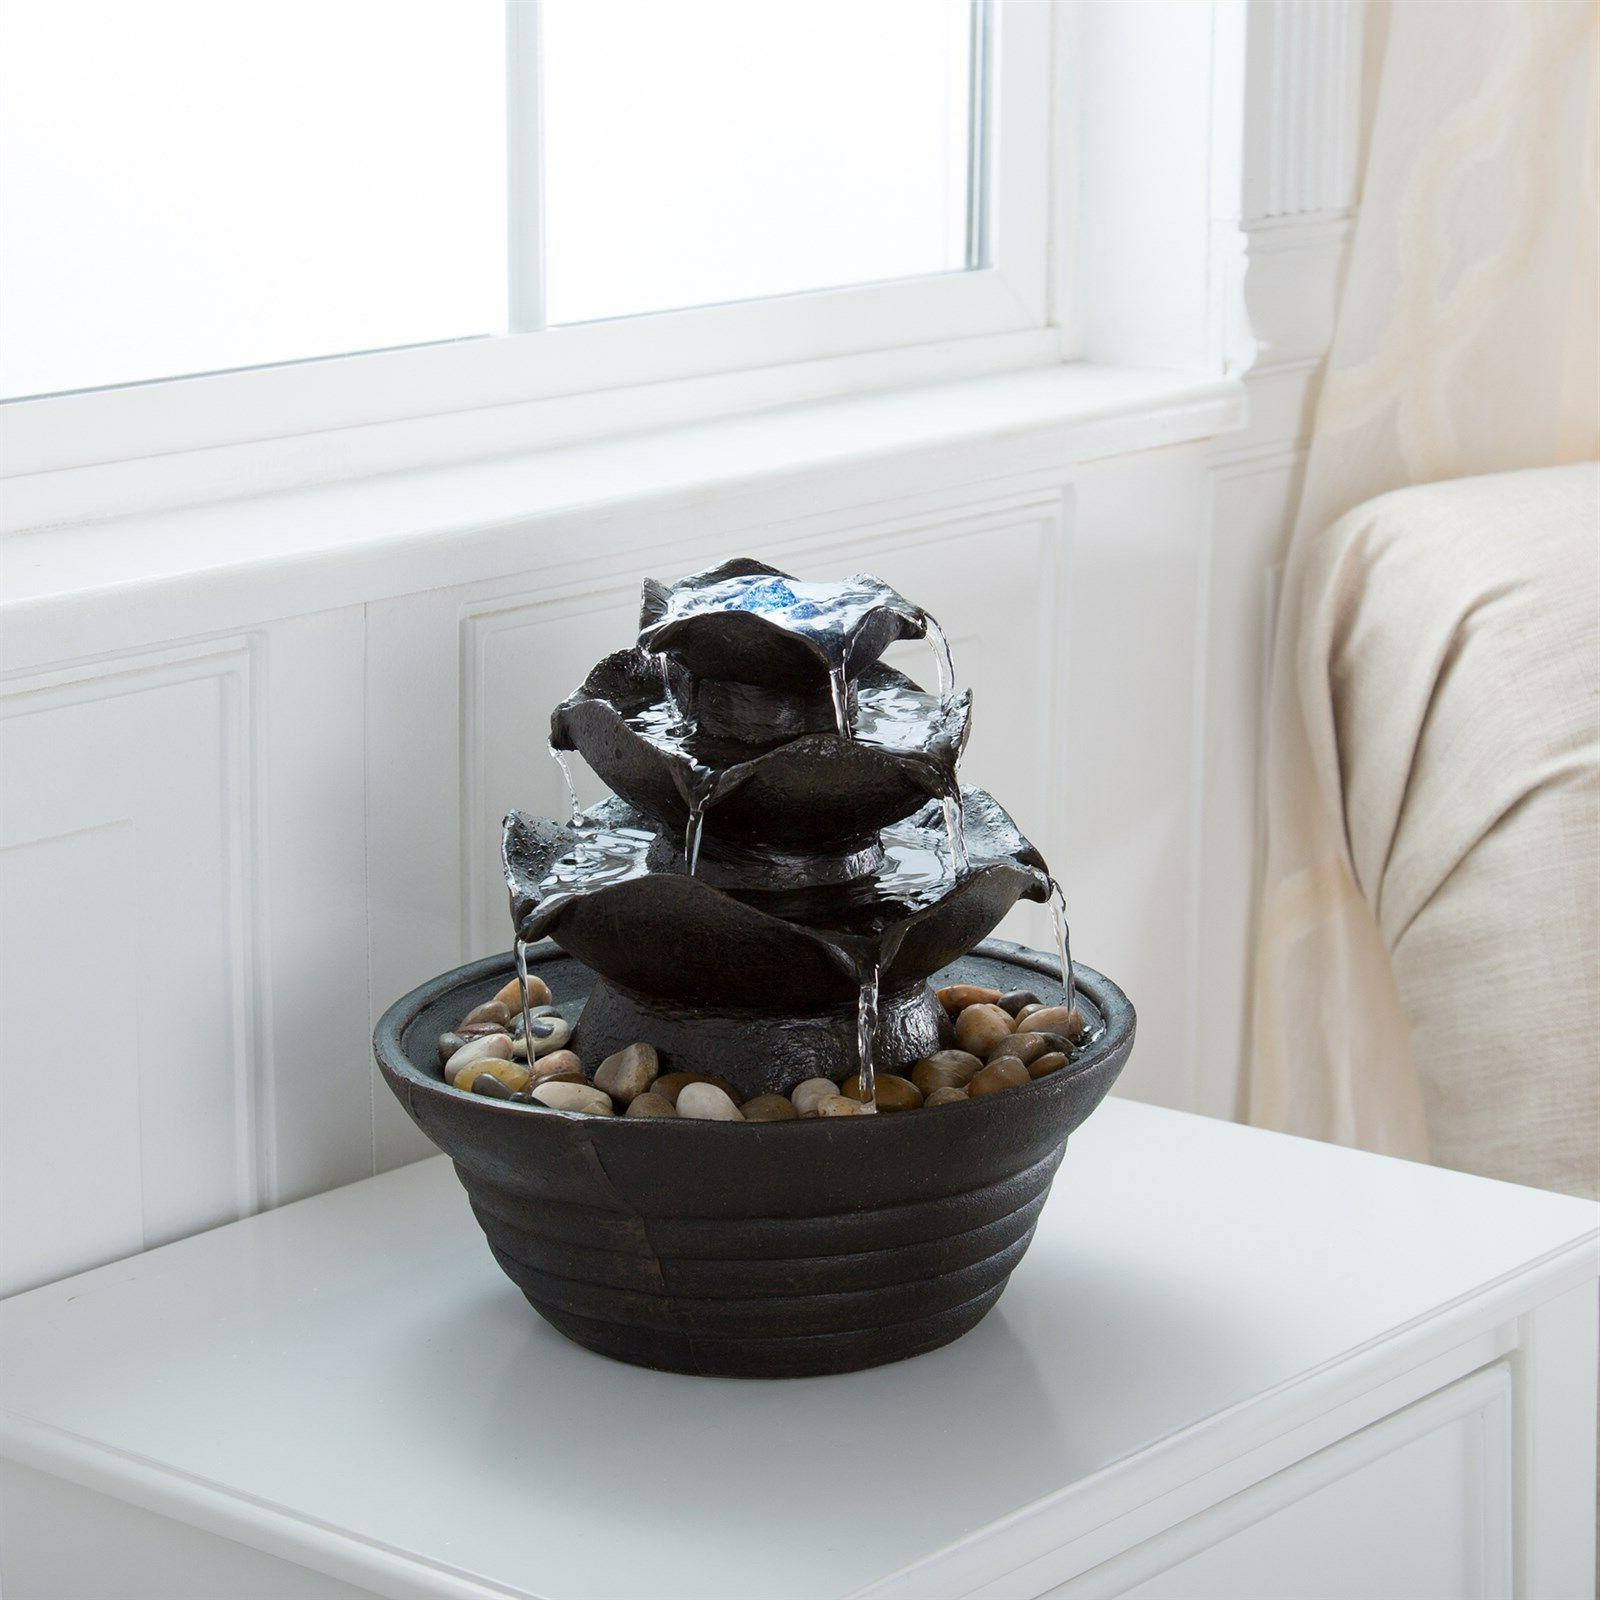 Table Water Fountain 3 Tier Bowls LED